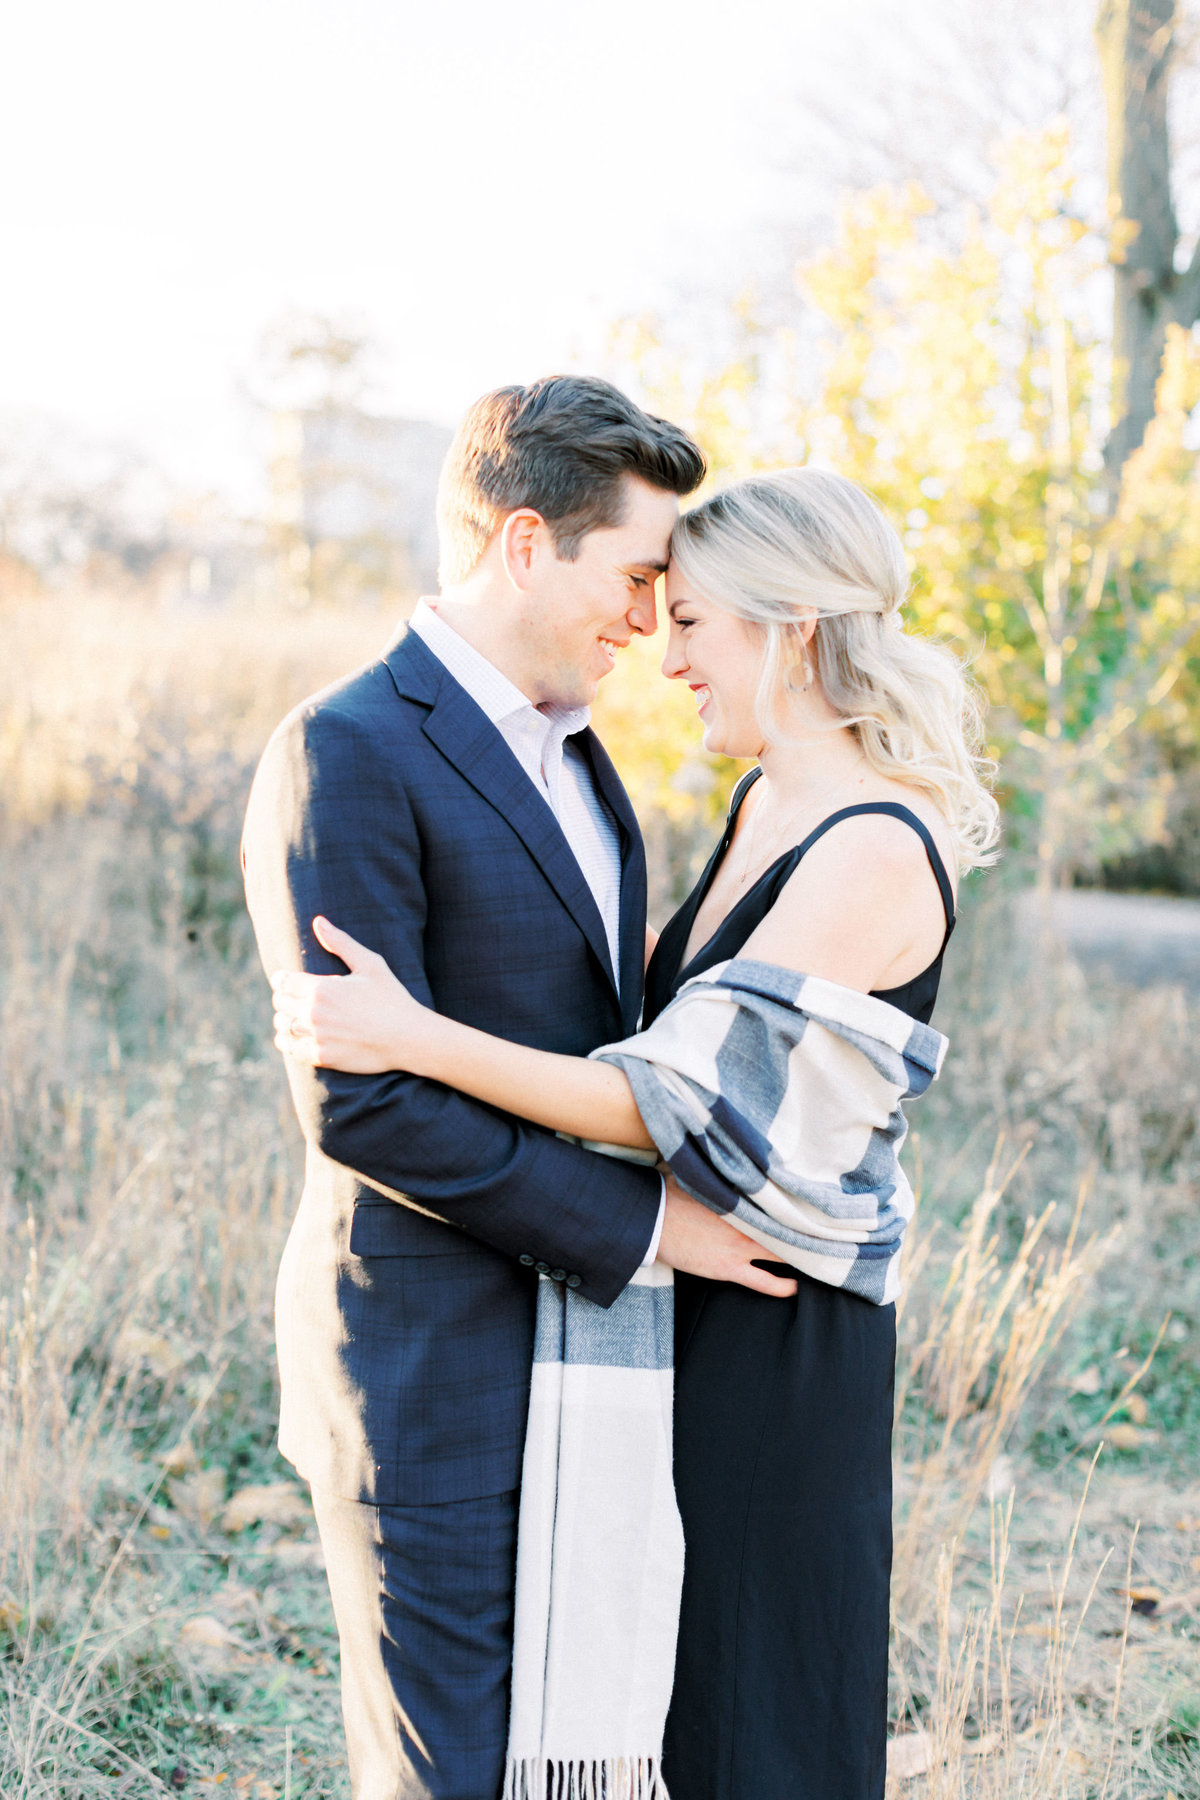 TiffaneyChildsPhotography-ChicagoWeddingPhotographer-AnneMarie+Connor-LincolnParkNatureBoardwalkEngagementSession-28